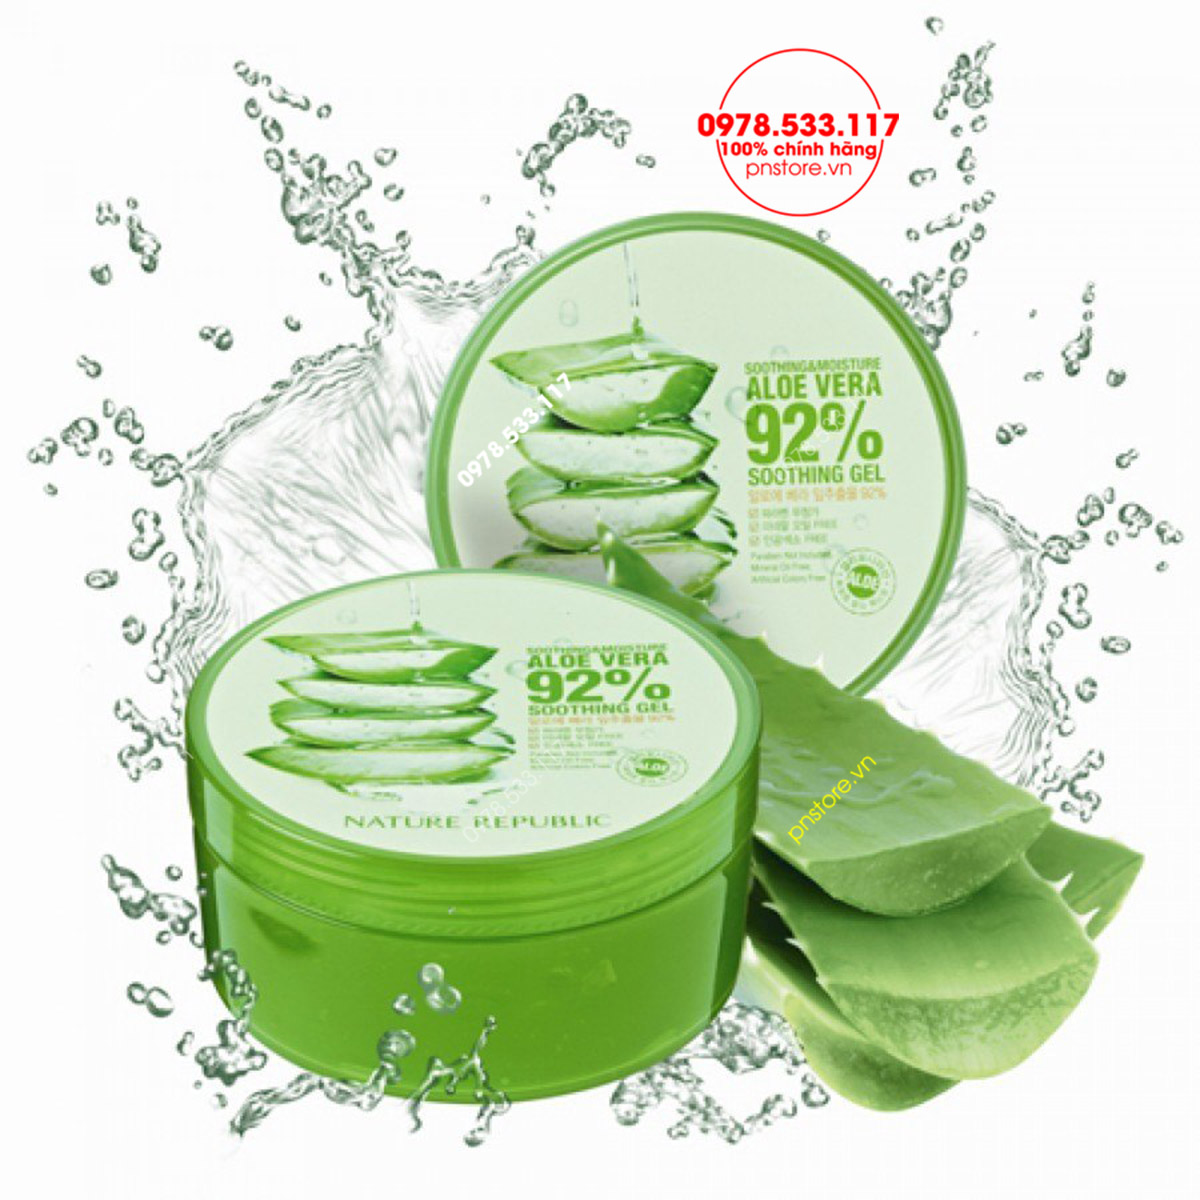 gel-lo-hoi-nature-republic-aloe-vera-92-soothing-gel-300ml-chinh-hang-han-quoc